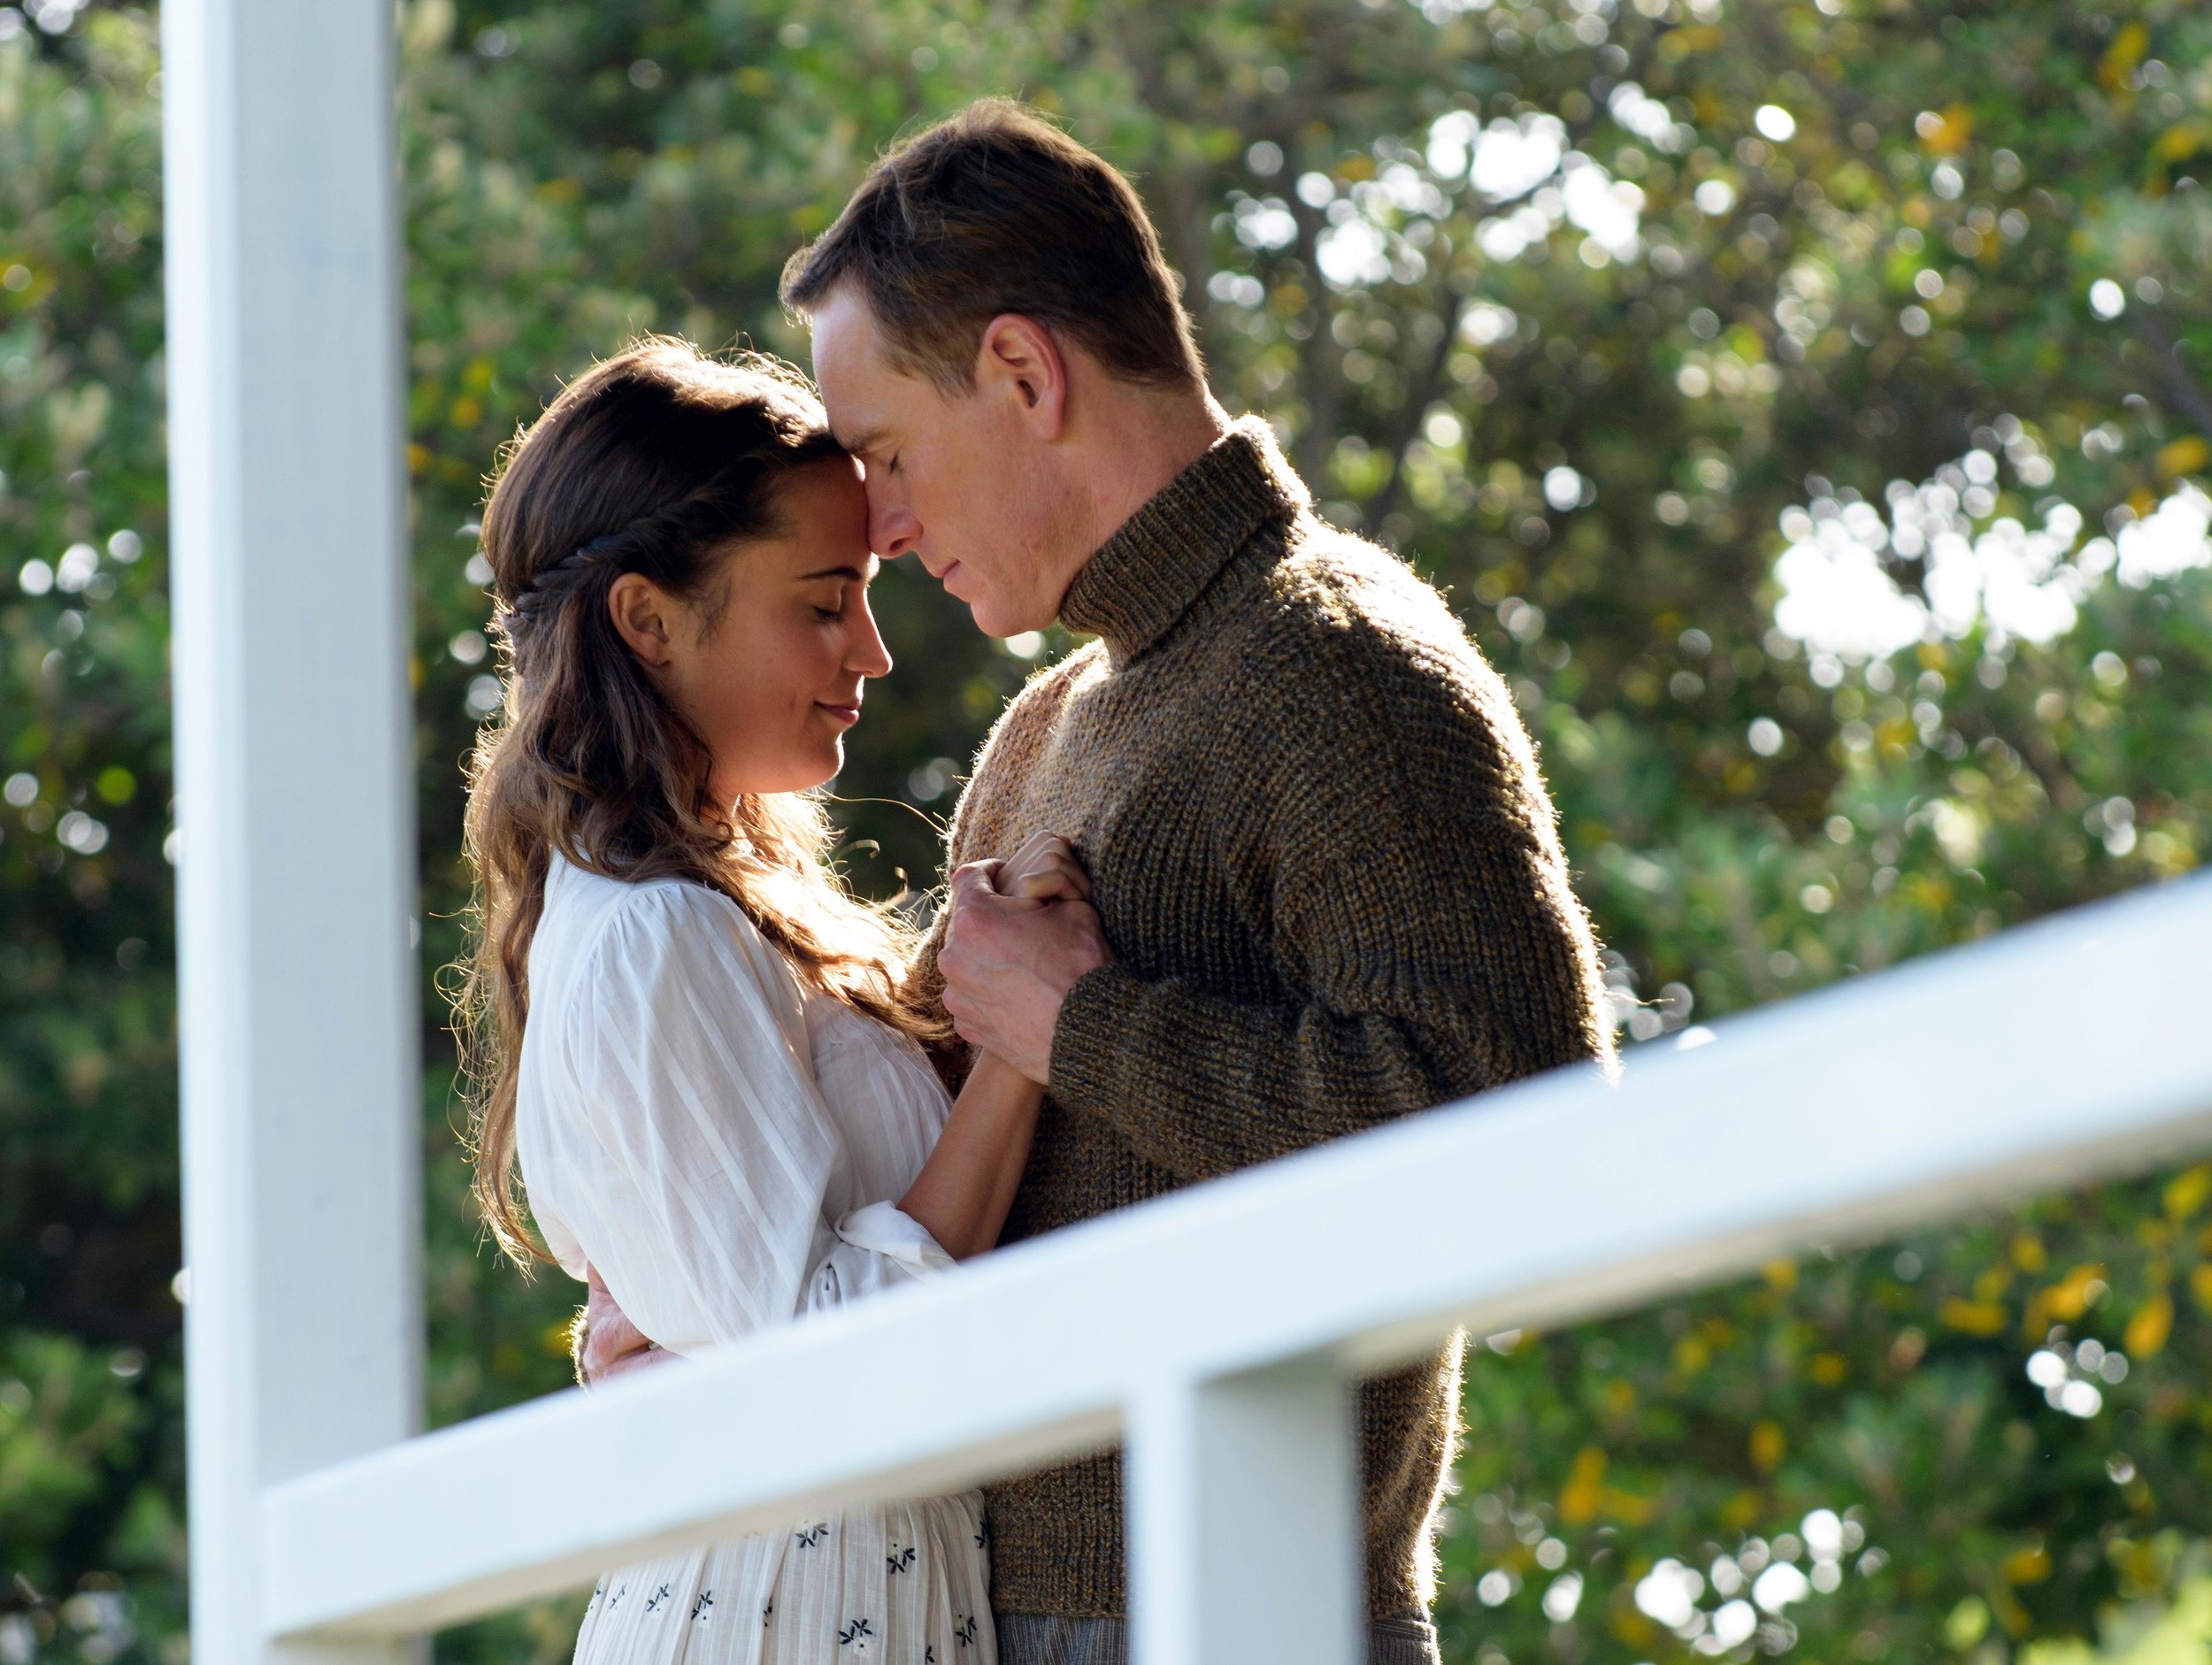 The Light Between Oceans - Amanda welcomes new guest, Faythe, to discuss the film, The Light Between Oceans. Faythe calls Shrek 2 a cinematic masterpiece, Amanda wants all the knit ware in the movie and both of them cry and love babies.